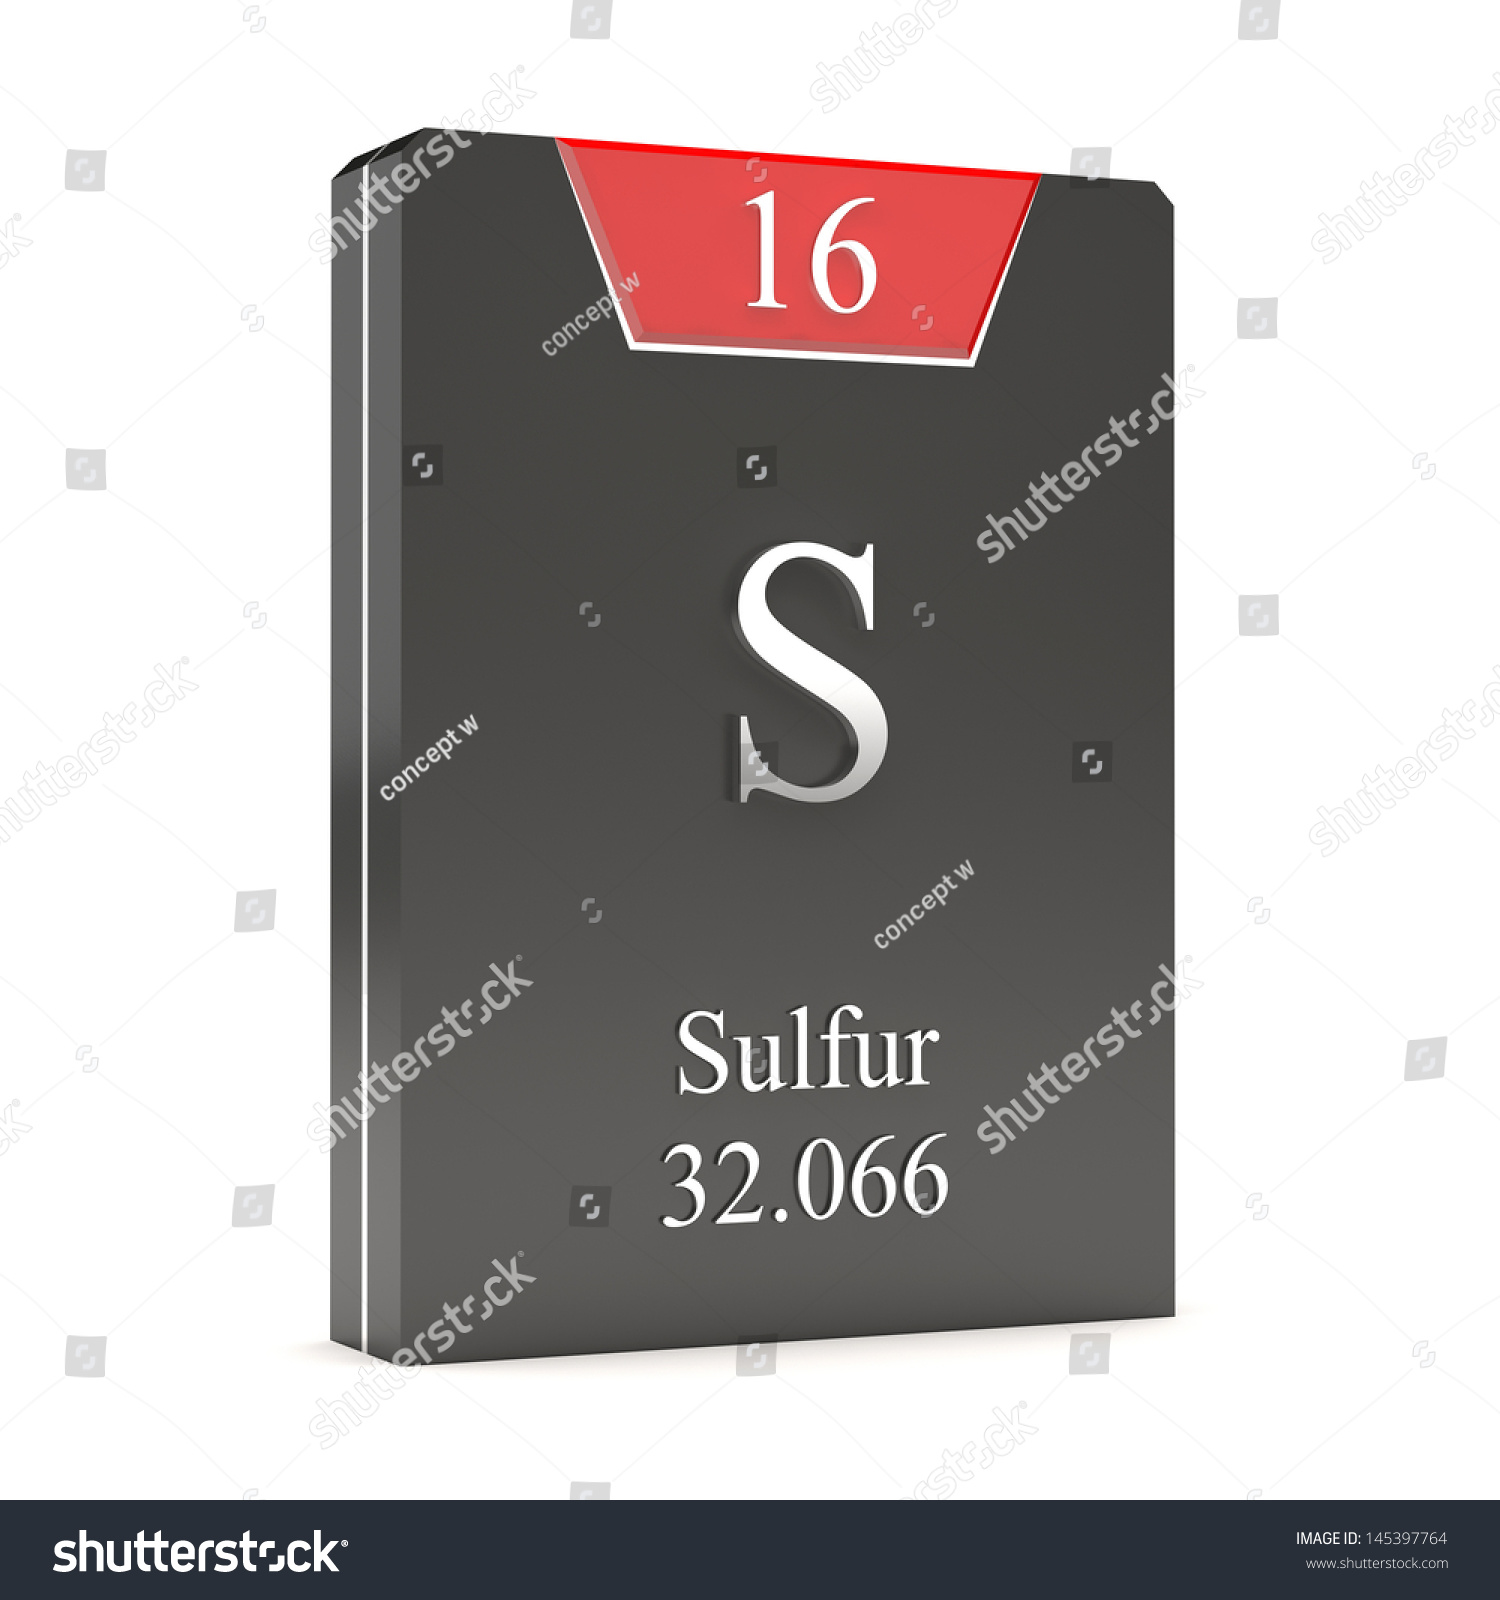 Periodic table for sulfur choice image periodic table images periodic table for sulfur image collections periodic table images periodic table for sulfur image collections periodic gamestrikefo Image collections